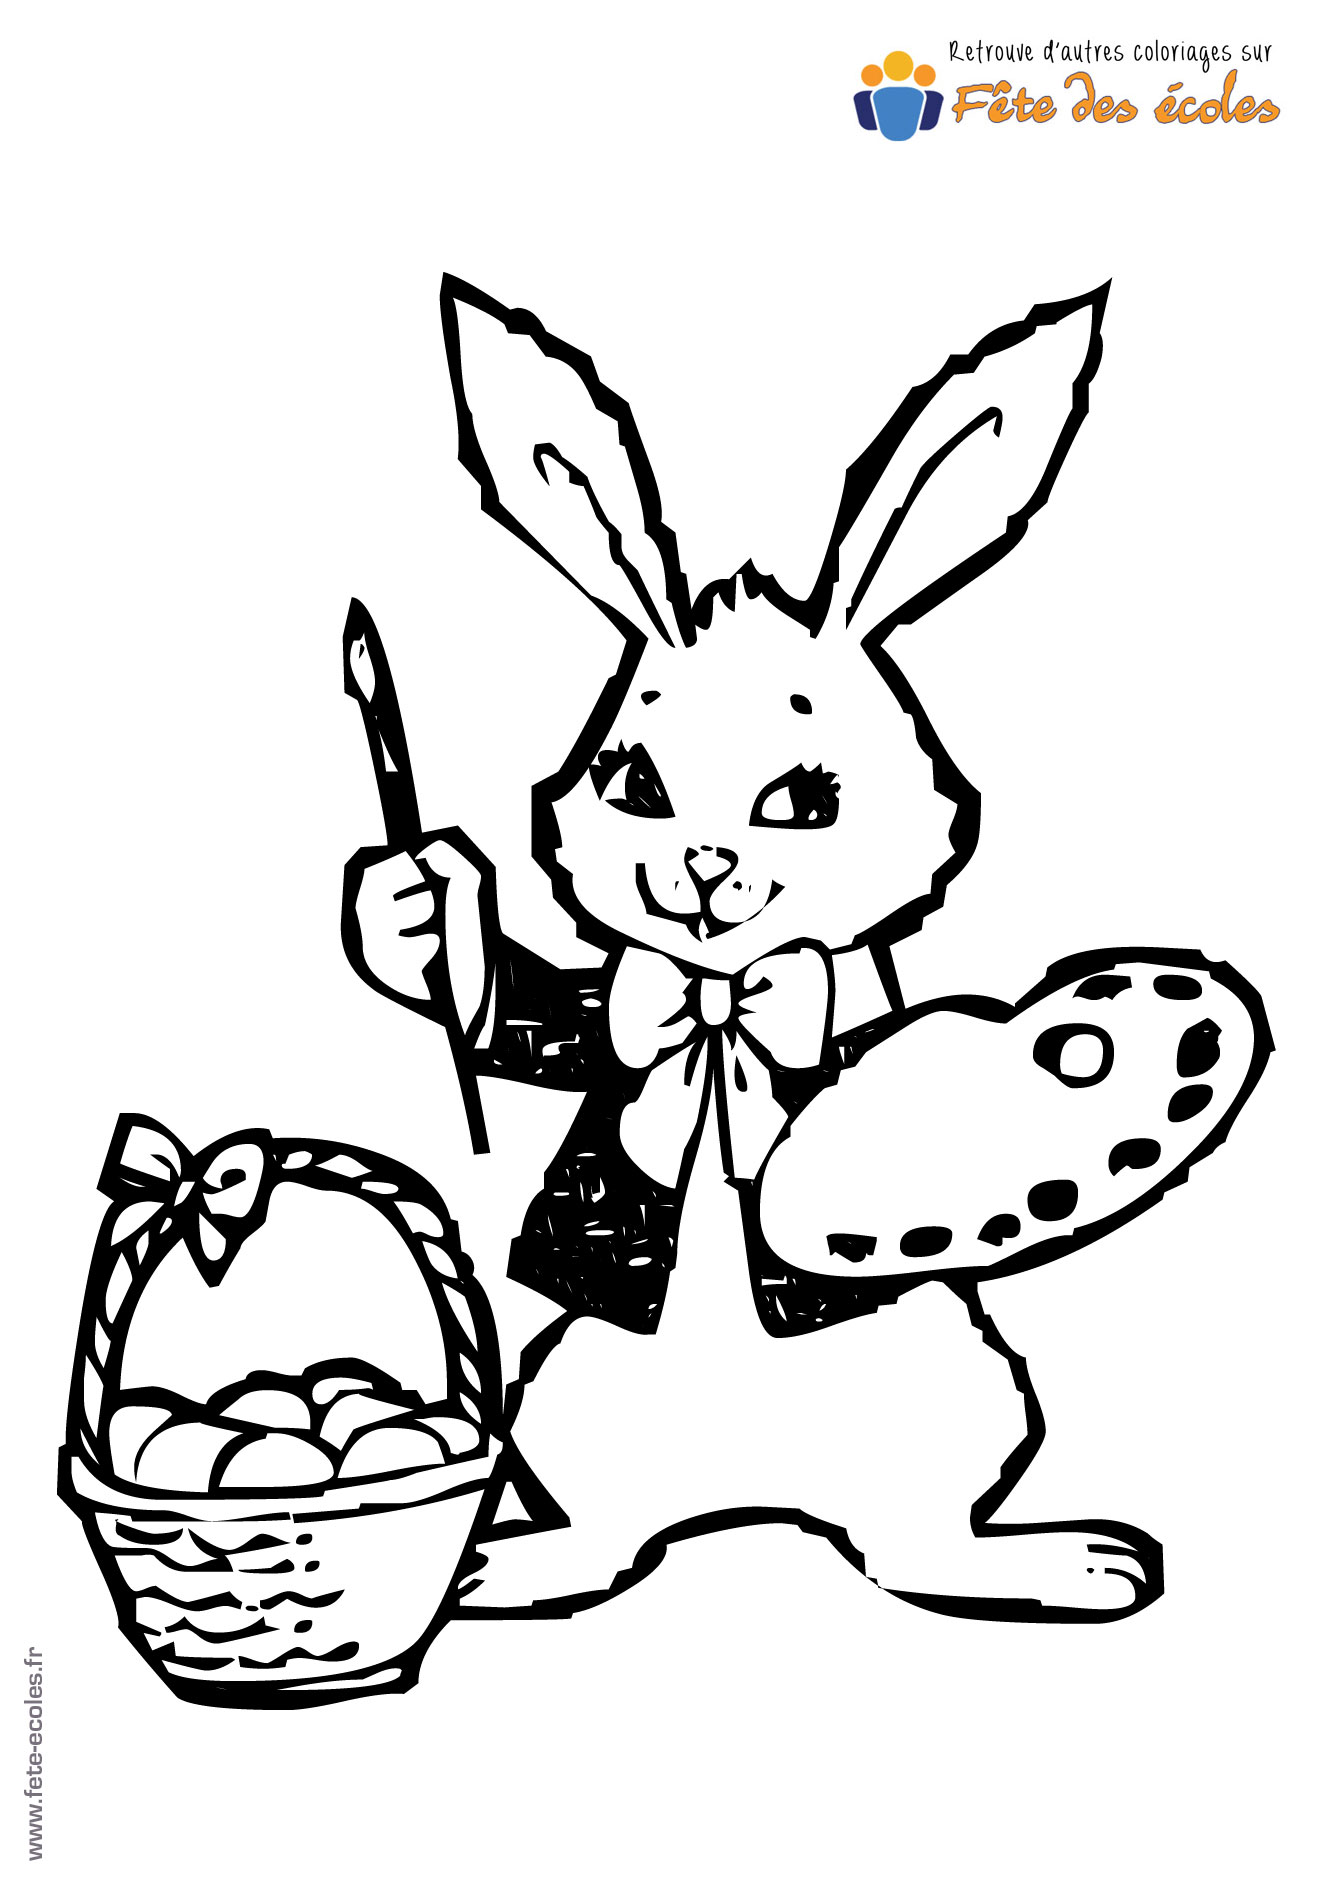 Coloriages dartiste - Coloriages lapin ...